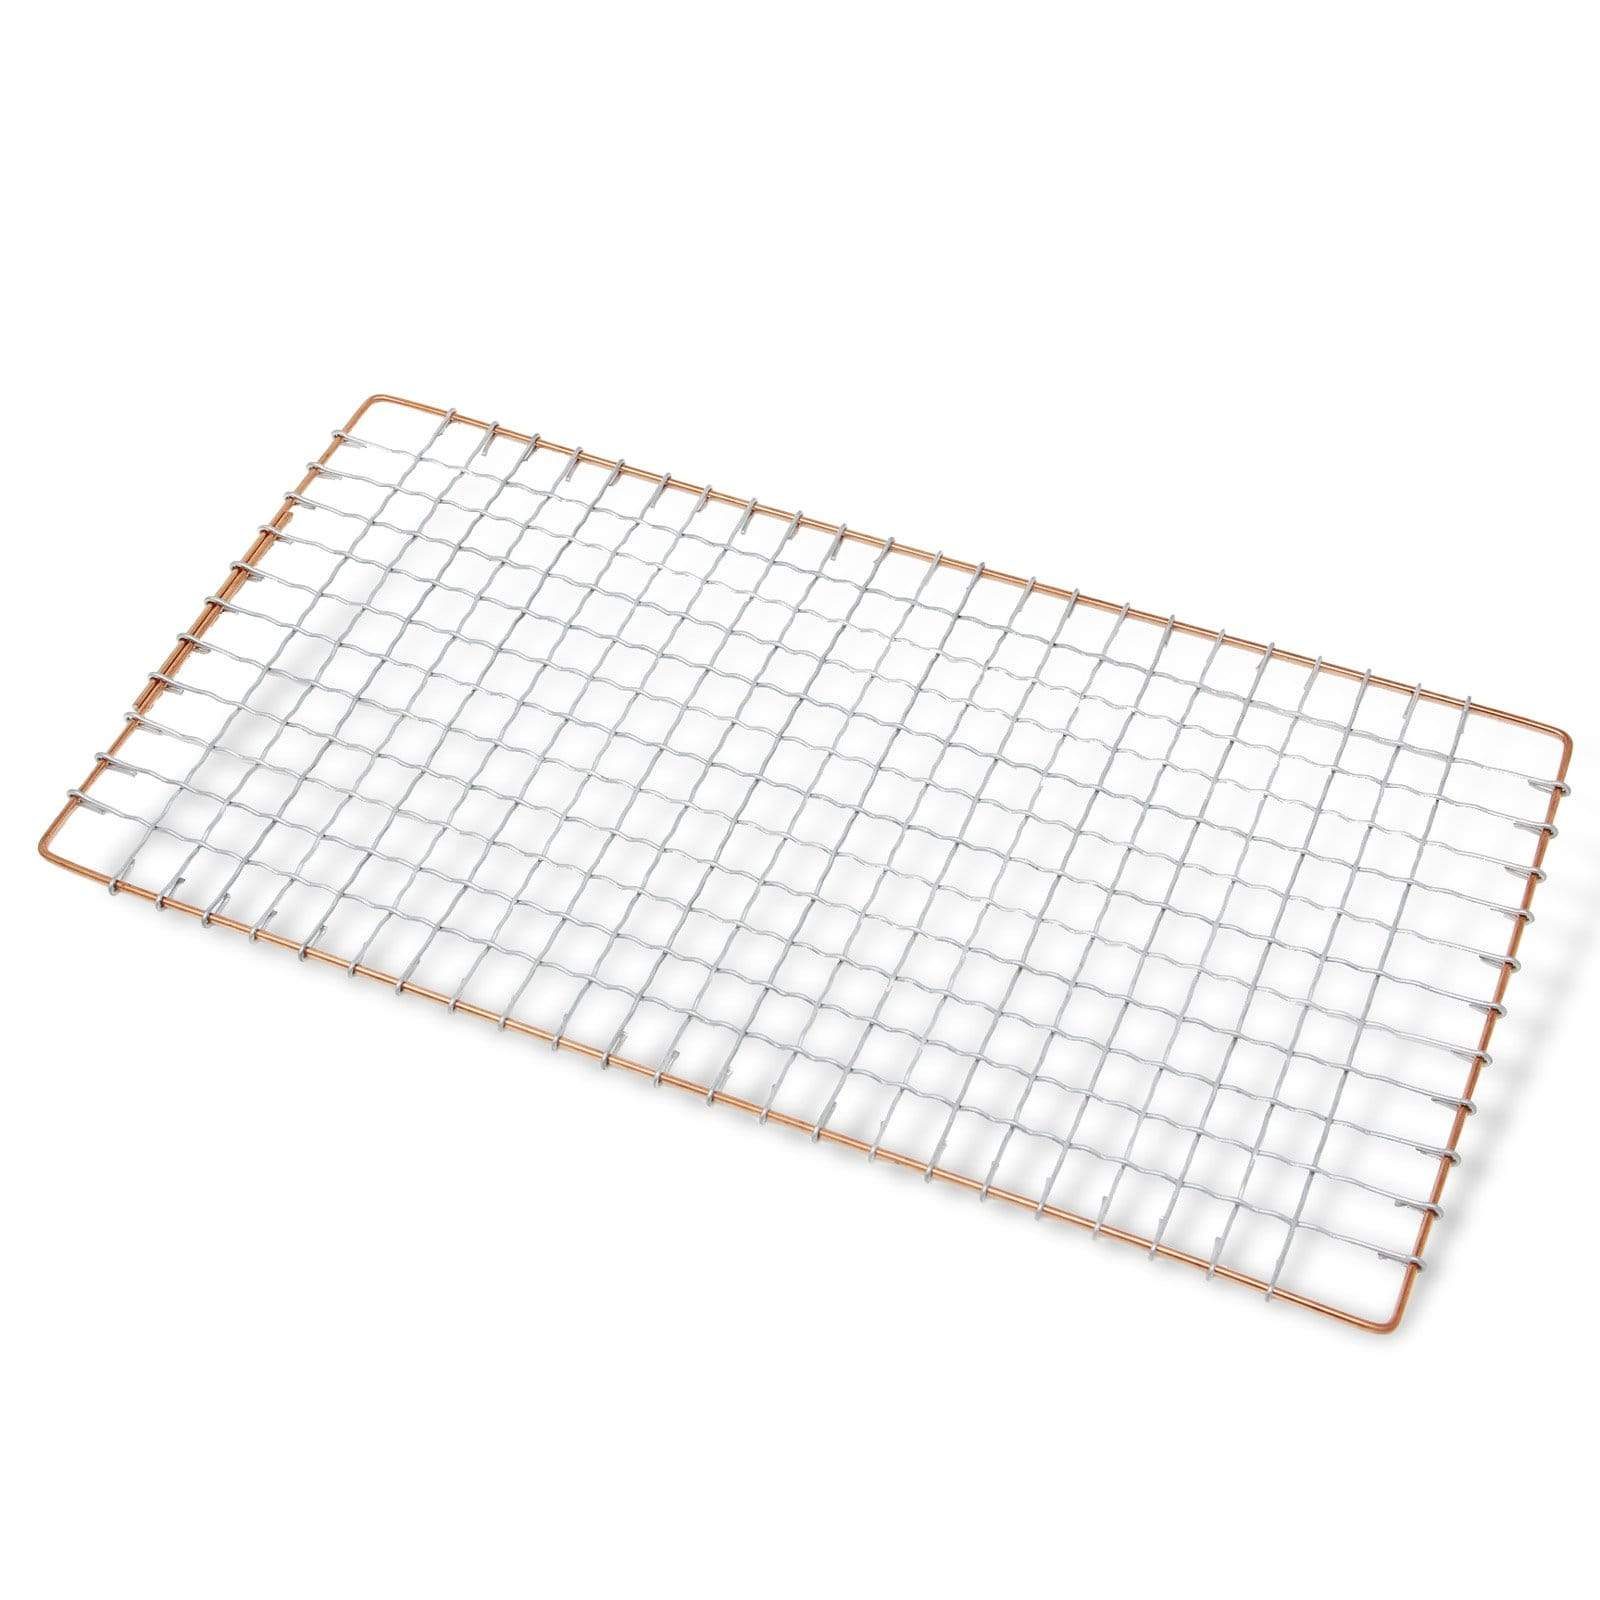 Marujyu Stainless Steel Barbecue Grill Intercrimp Woven Wire Mesh for Hida Konro (Rectangular) Barbecue Grill Mesh